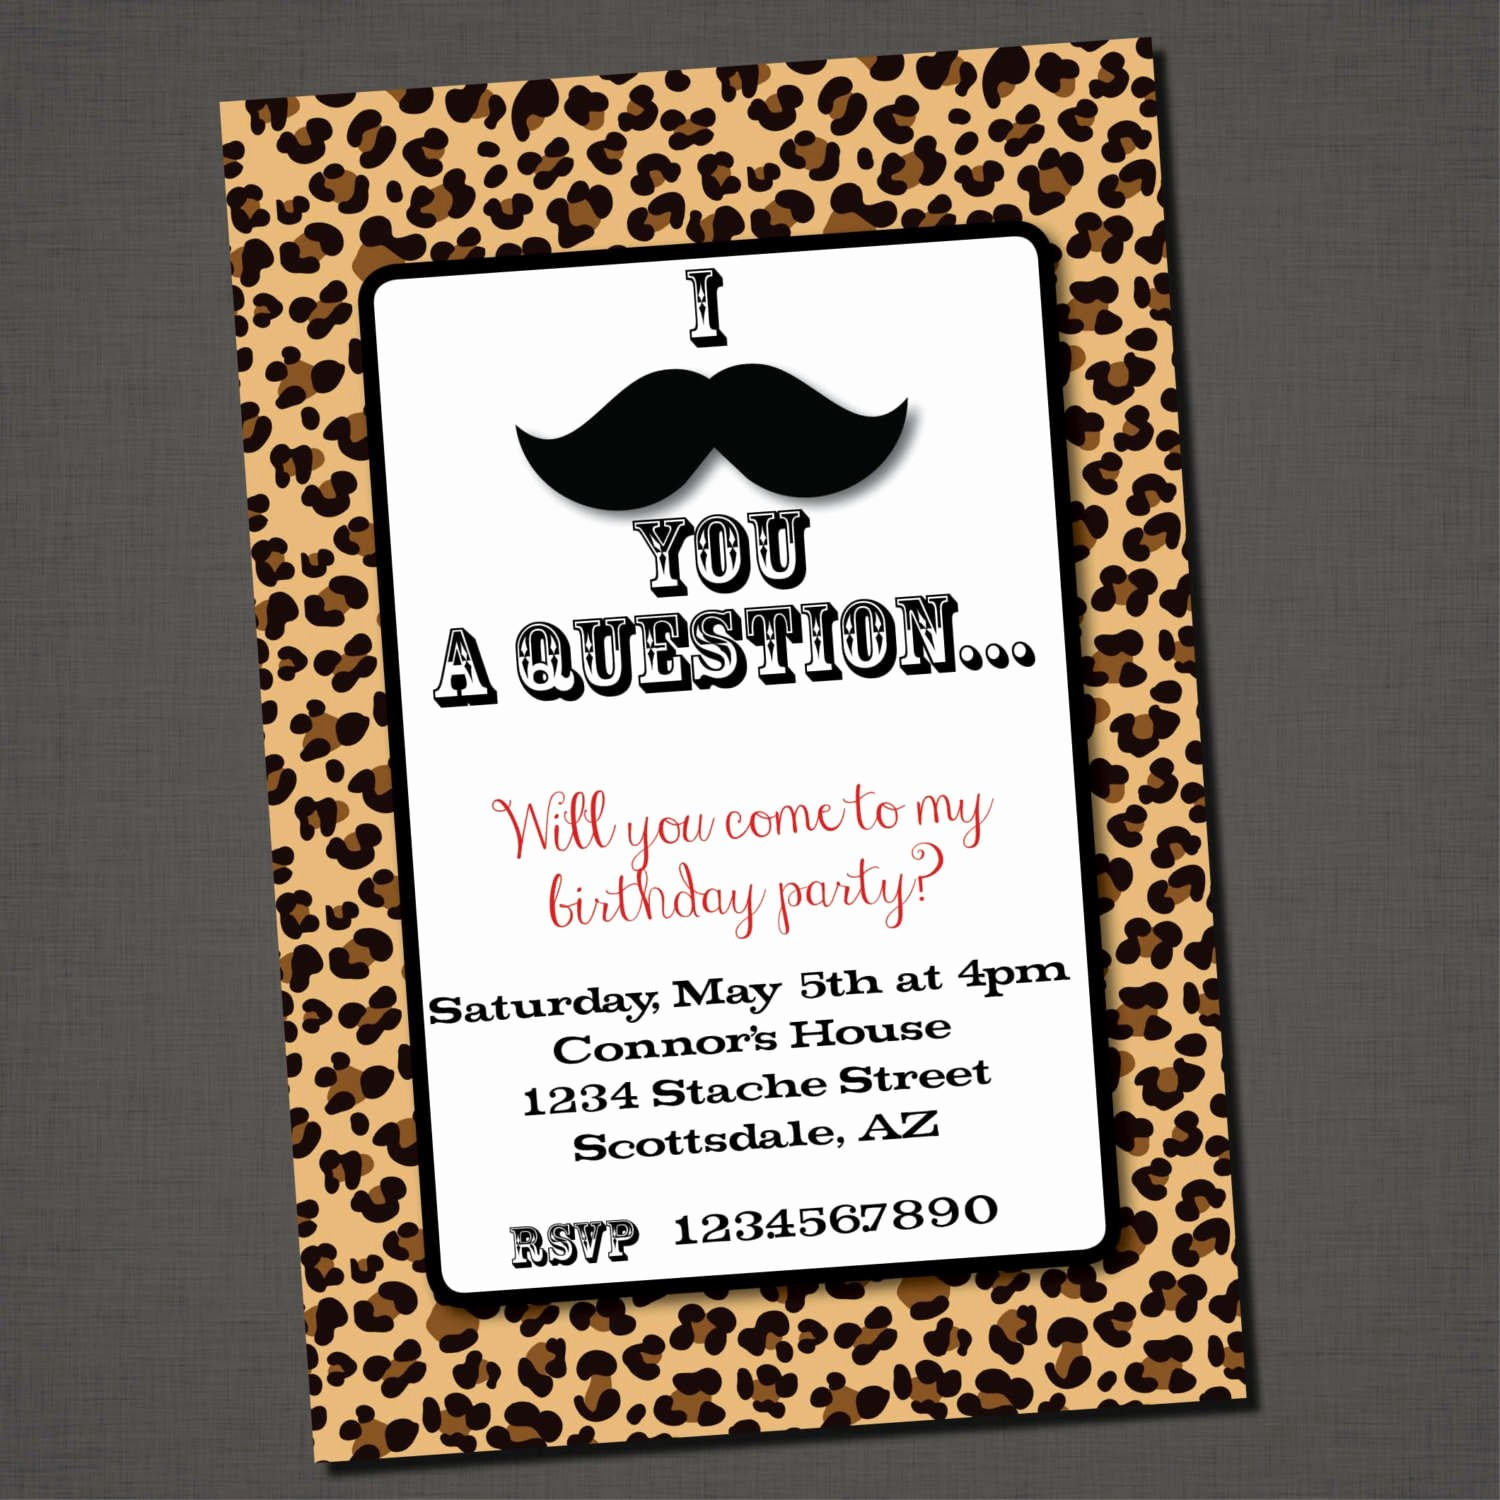 Template for Graduation Party Invitation Awesome Graduation Party Invitations Graduation Party